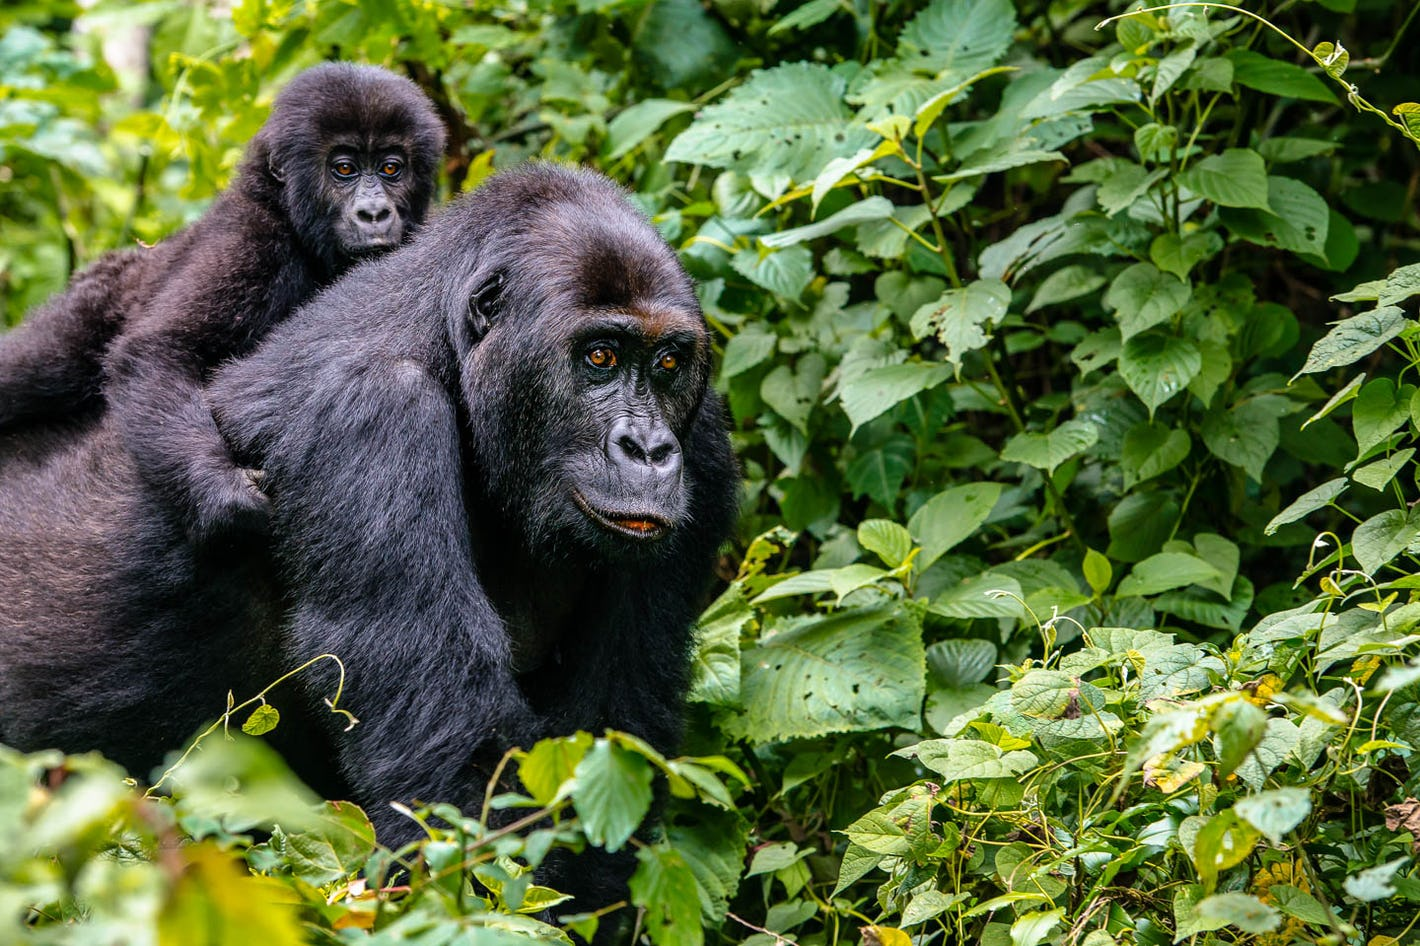 Gorilla with baby in Uganda